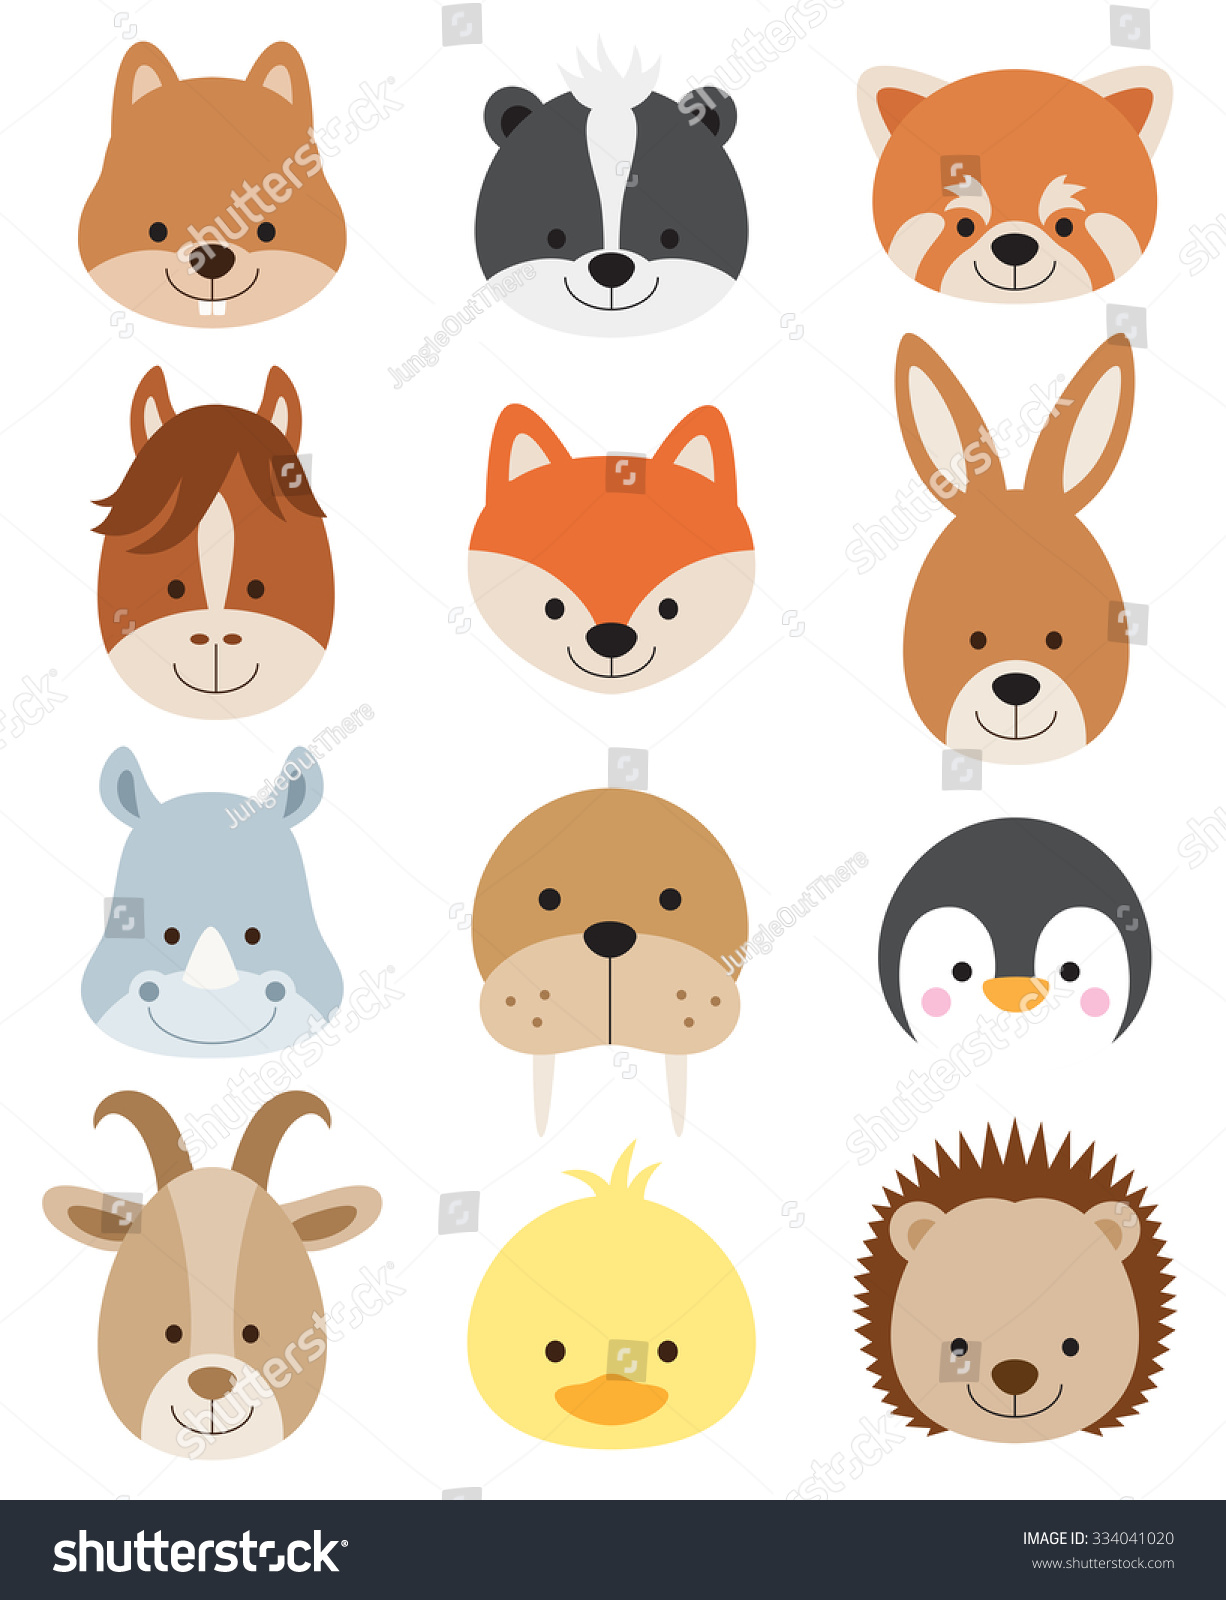 Vector Illustration Of Animal Faces Including Squirrel